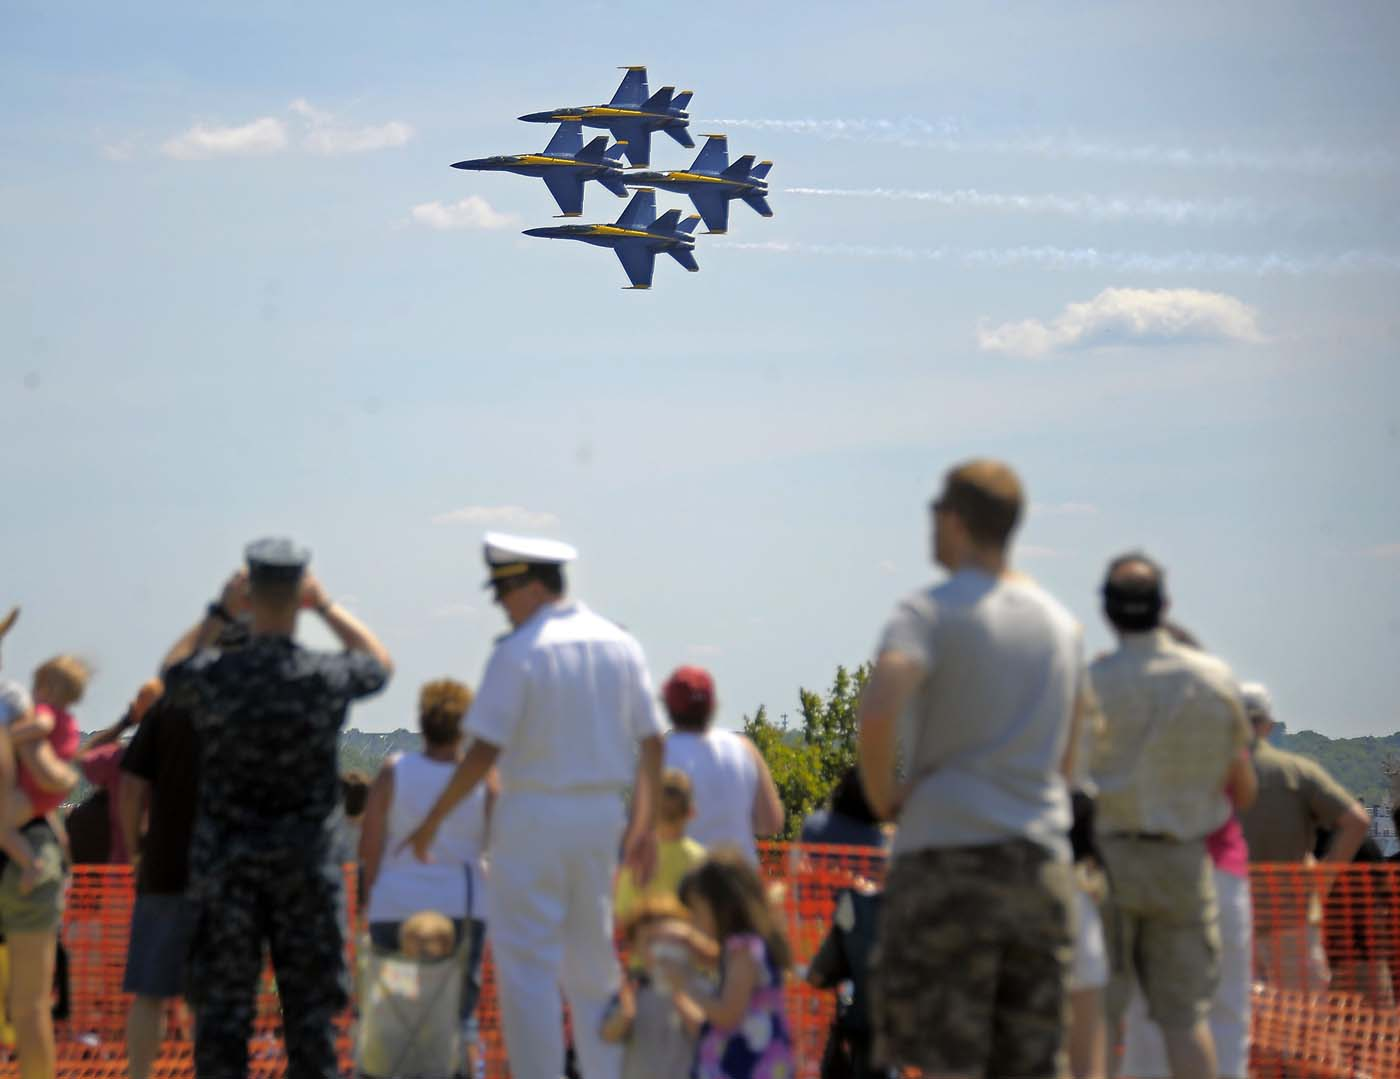 The Blue Angels - Boeing F/A-18 Super Hornet planes - fly in close formation, banking above the sea of spectators who watch the air show during the weekend-long Star Spangled Sailabration 200 at Fort McHenry Saturday, Jun 16, 2012. (Karl Merton Ferron/Baltimore Sun)